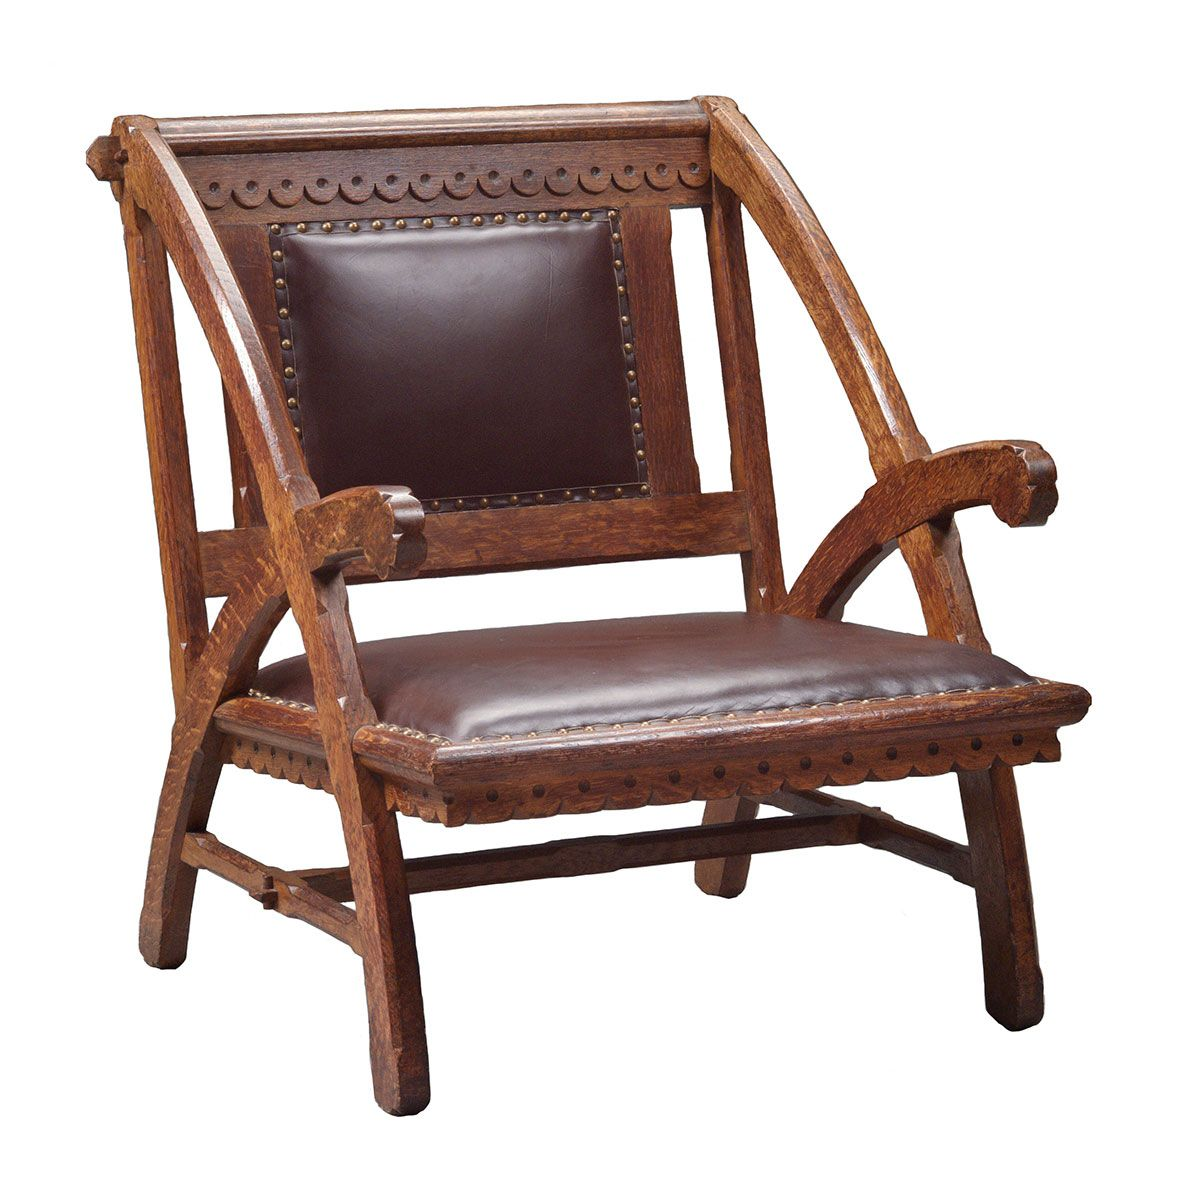 Armchair For The Woburn Public Library Probably Designed By HH Richardson Possibly Manufactured A H